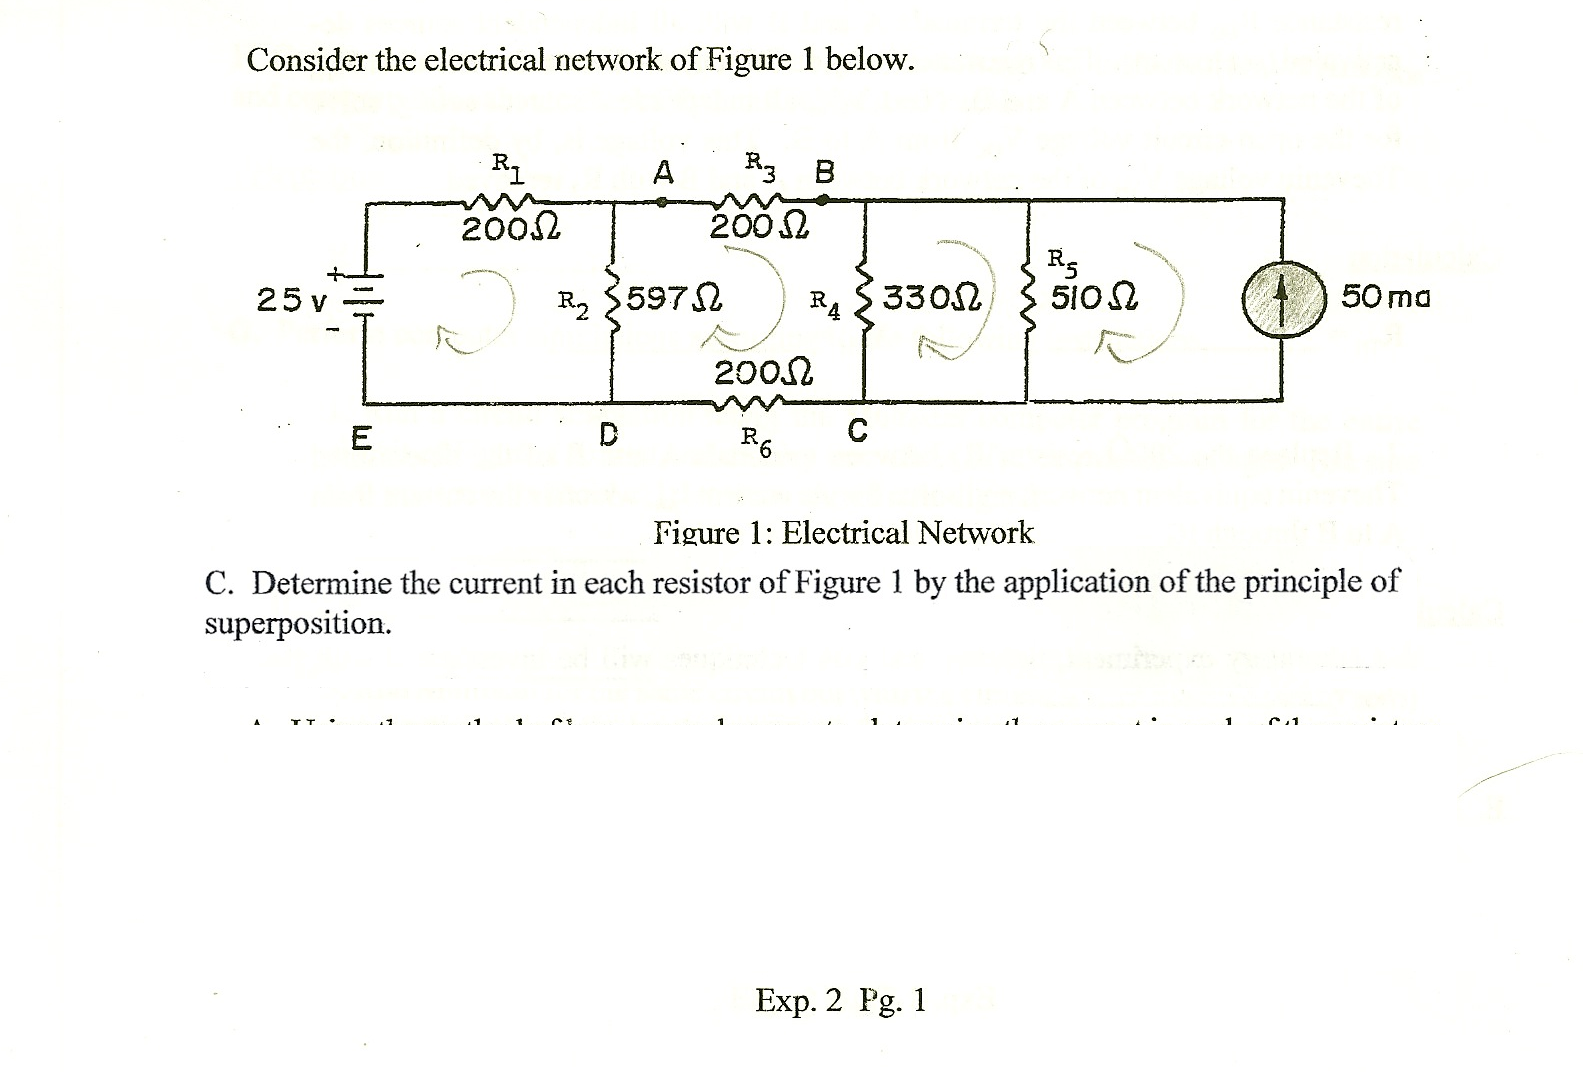 Consider the electrical network of Figure 1 below.